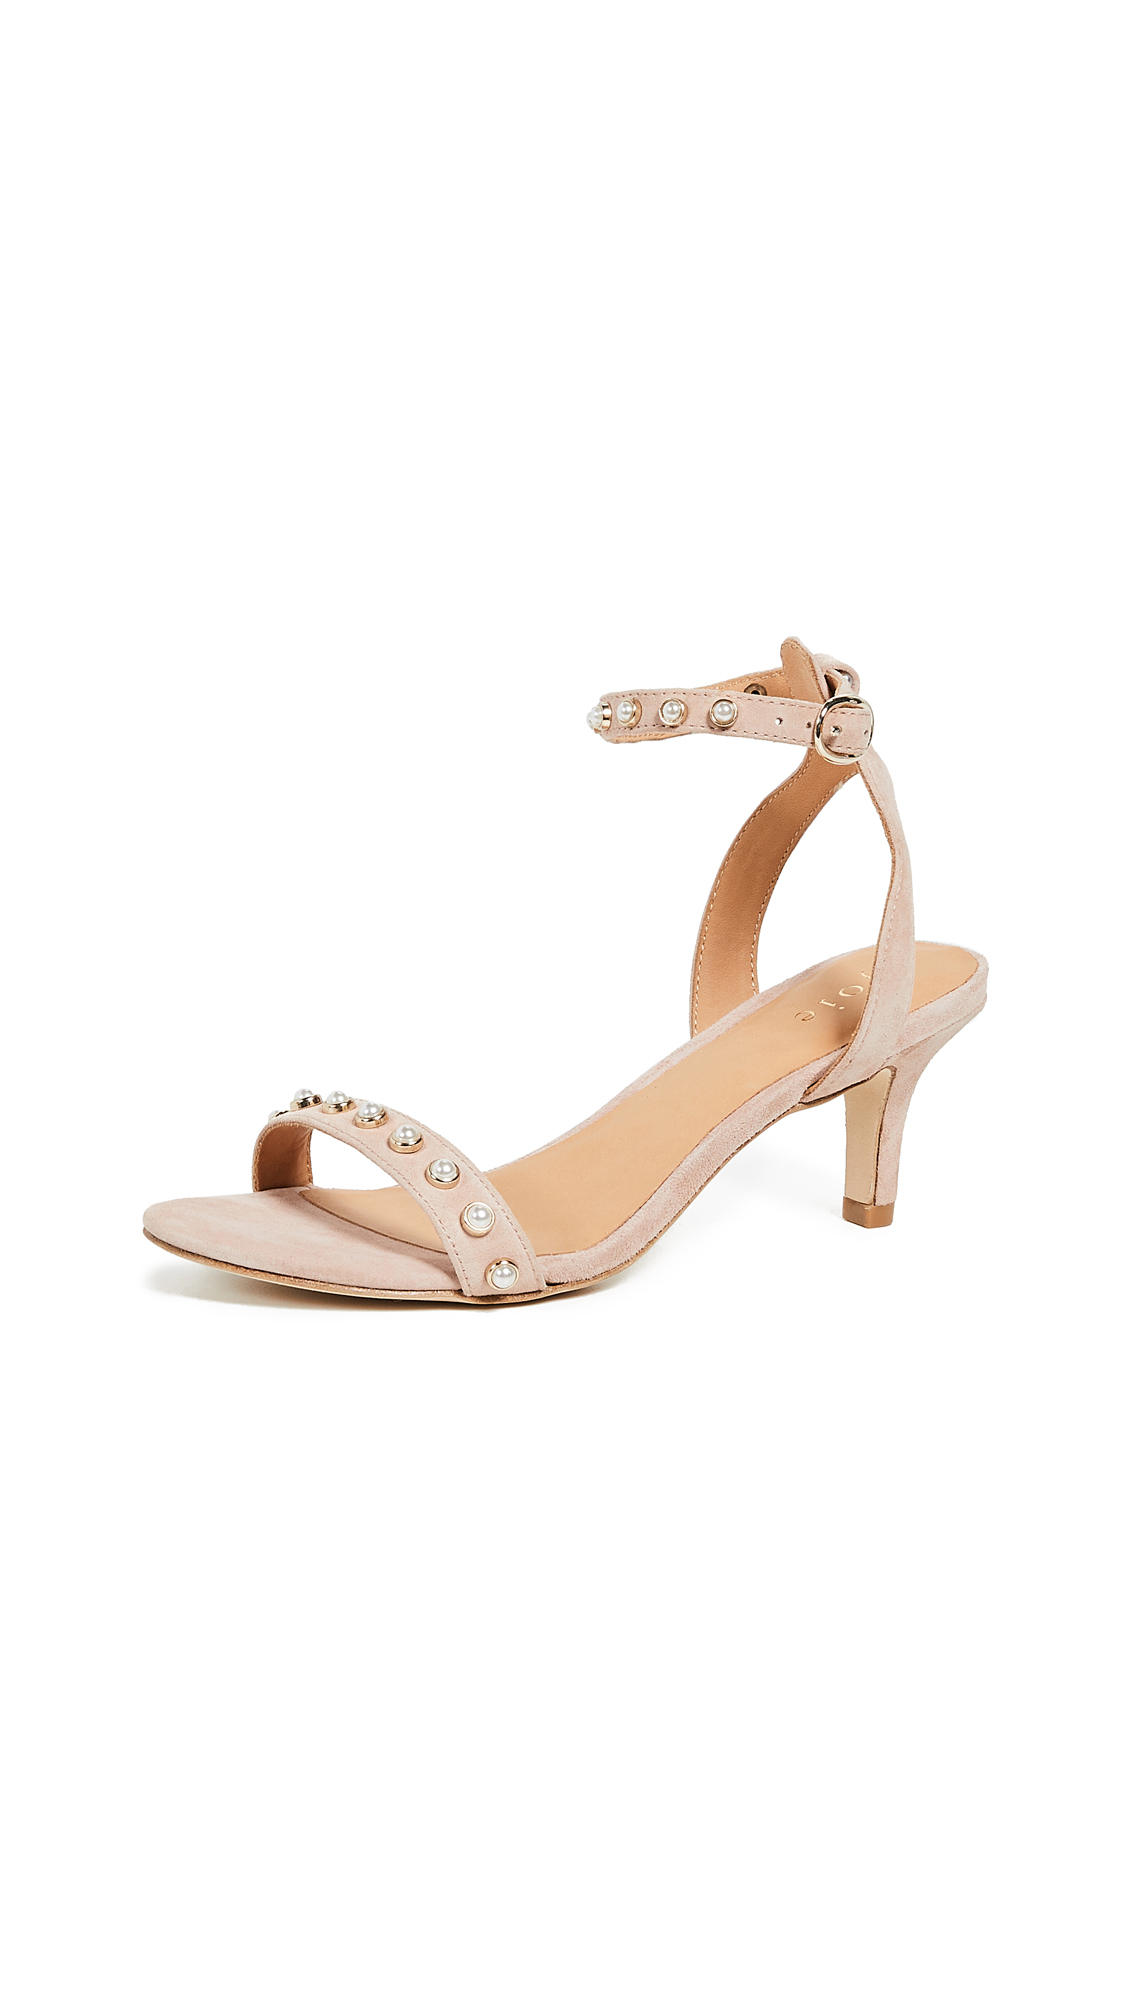 Joie Malina Sandals - Peach